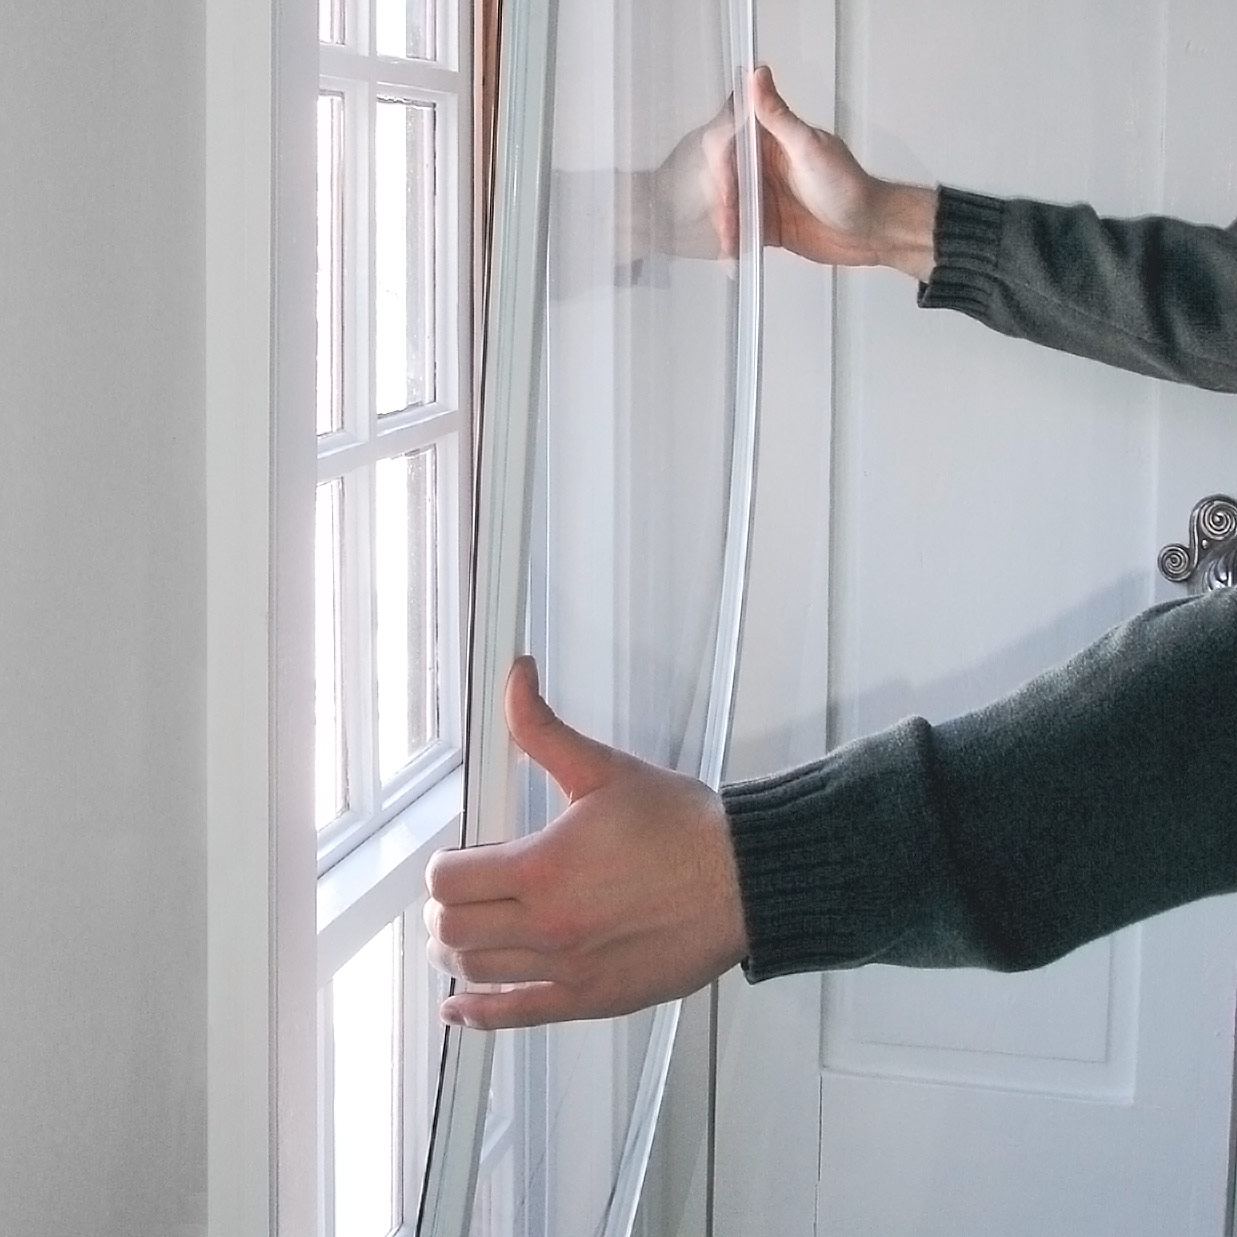 10 Simple Tricks to Keep your House Warm in Winter DIY do it yourself manomano the handy mano mano energy efficient heating storm windows layer cheap